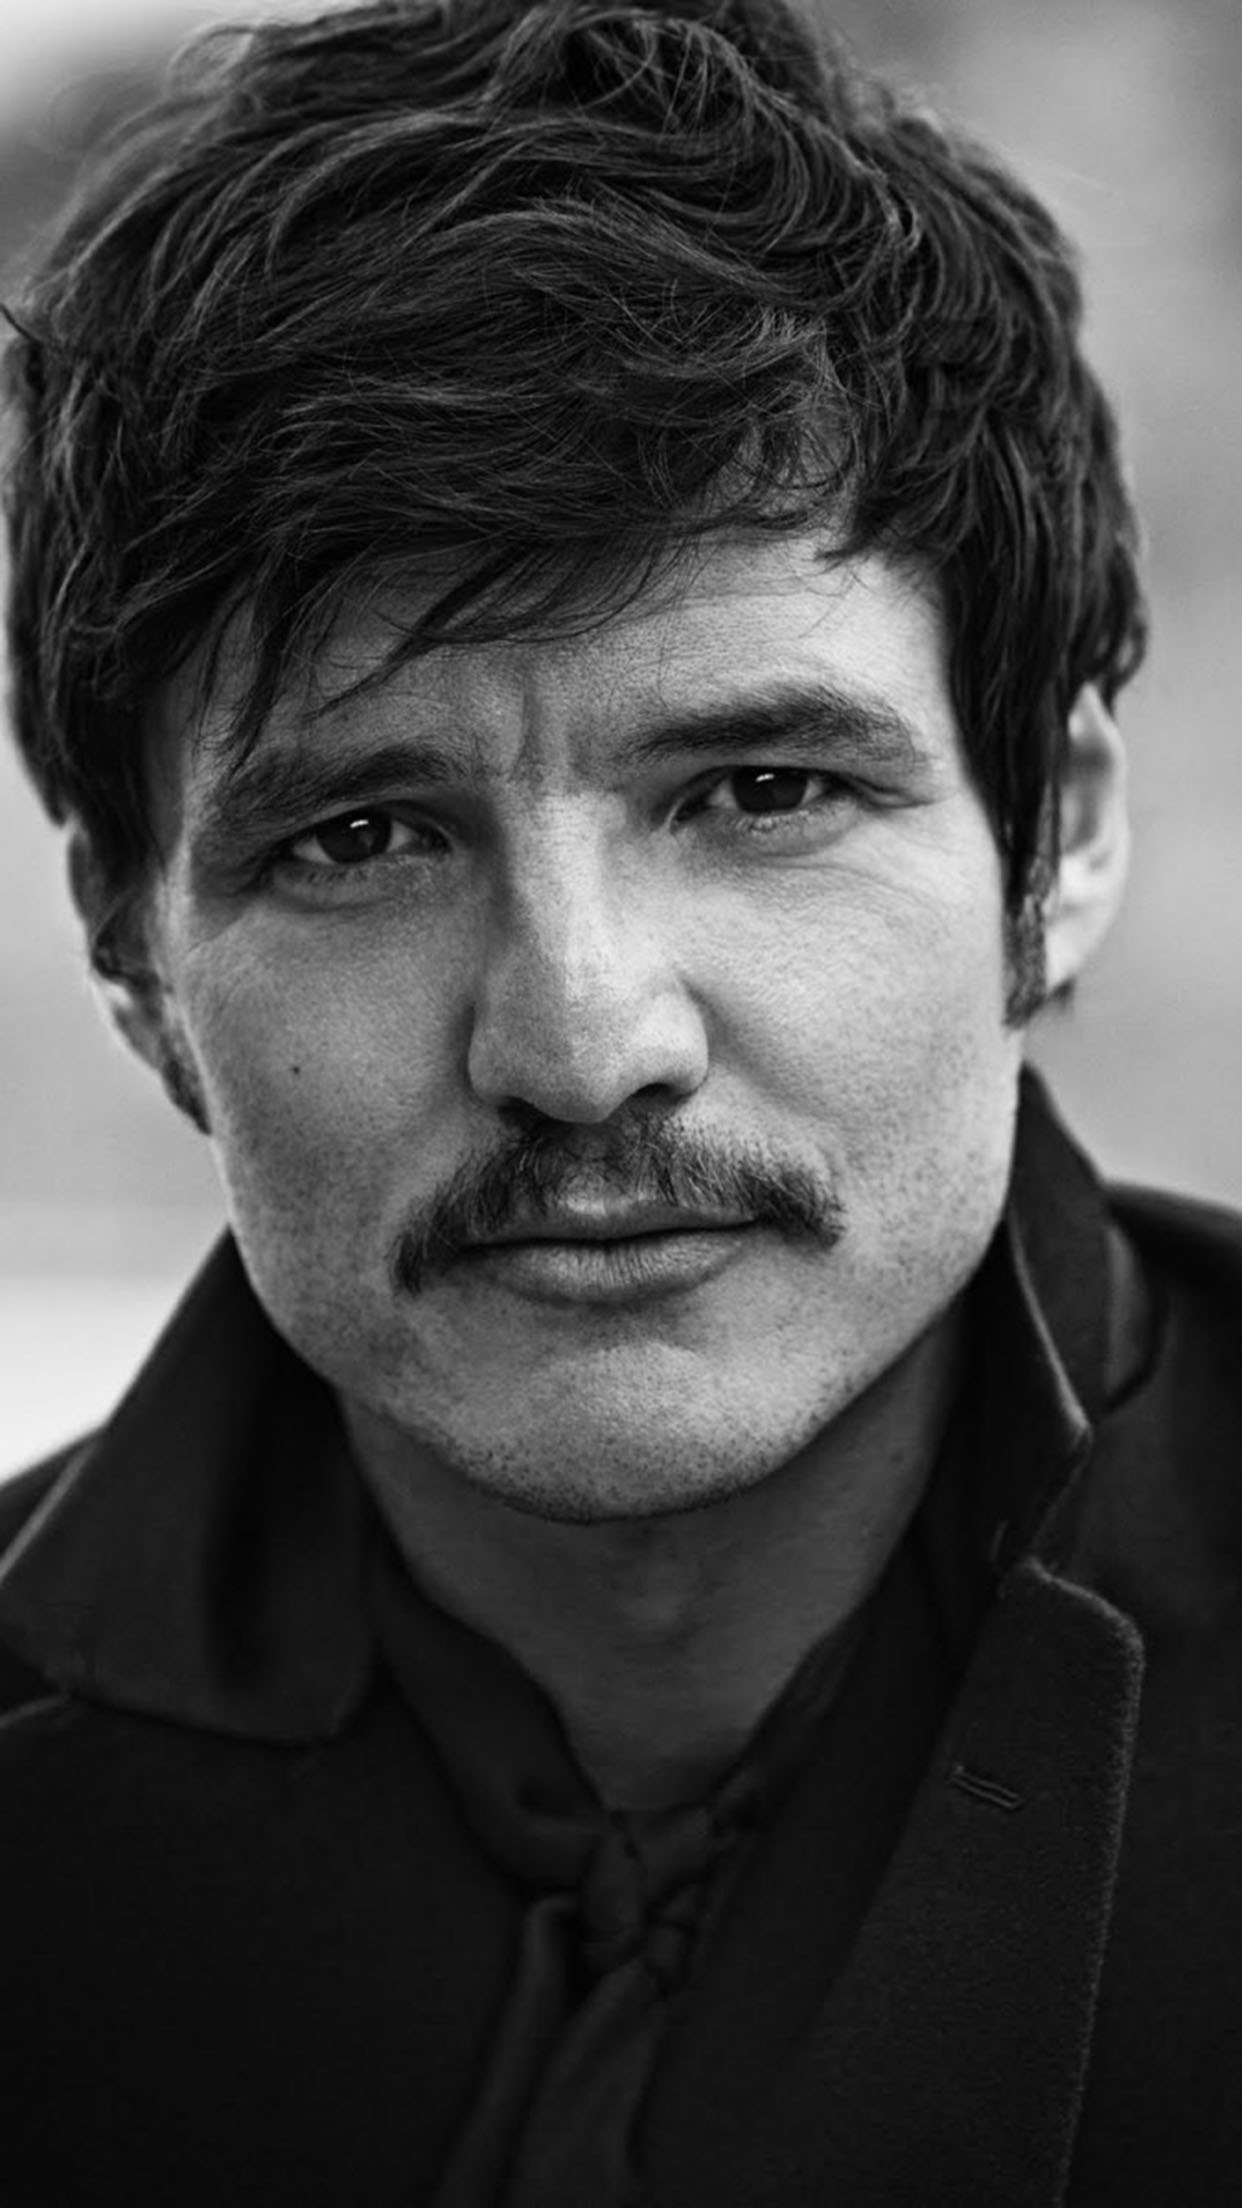 Narcos Pedro Pascal 3Wallpapers iPhone Parallax Pedro Pascal